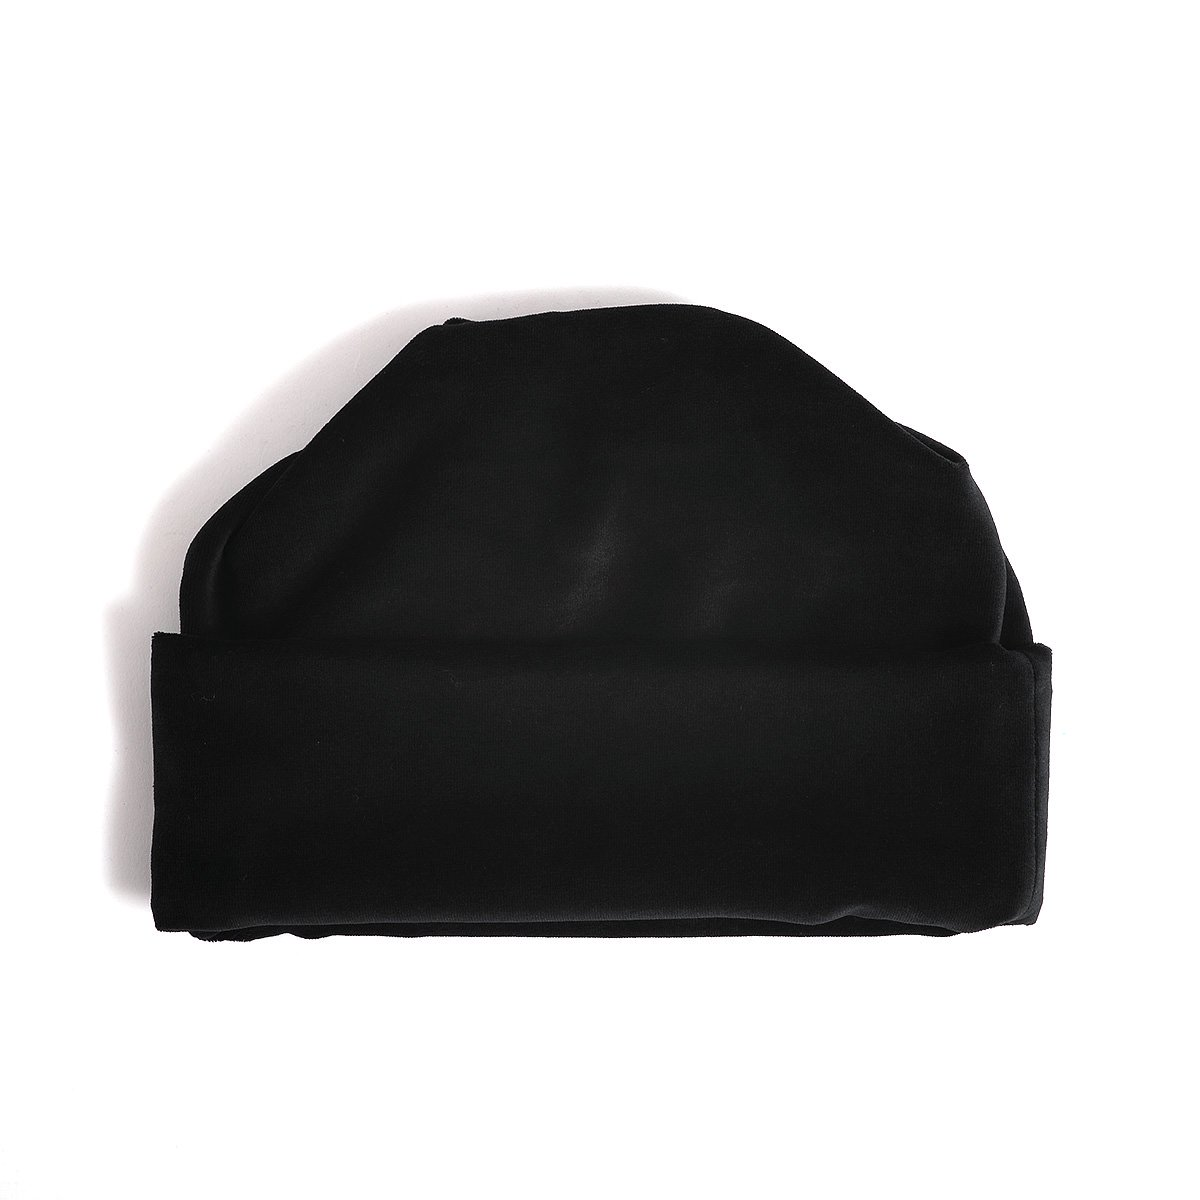 FABRIC WATCH CAP<img class='new_mark_img2' src='https://img.shop-pro.jp/img/new/icons38.gif' style='border:none;display:inline;margin:0px;padding:0px;width:auto;' />